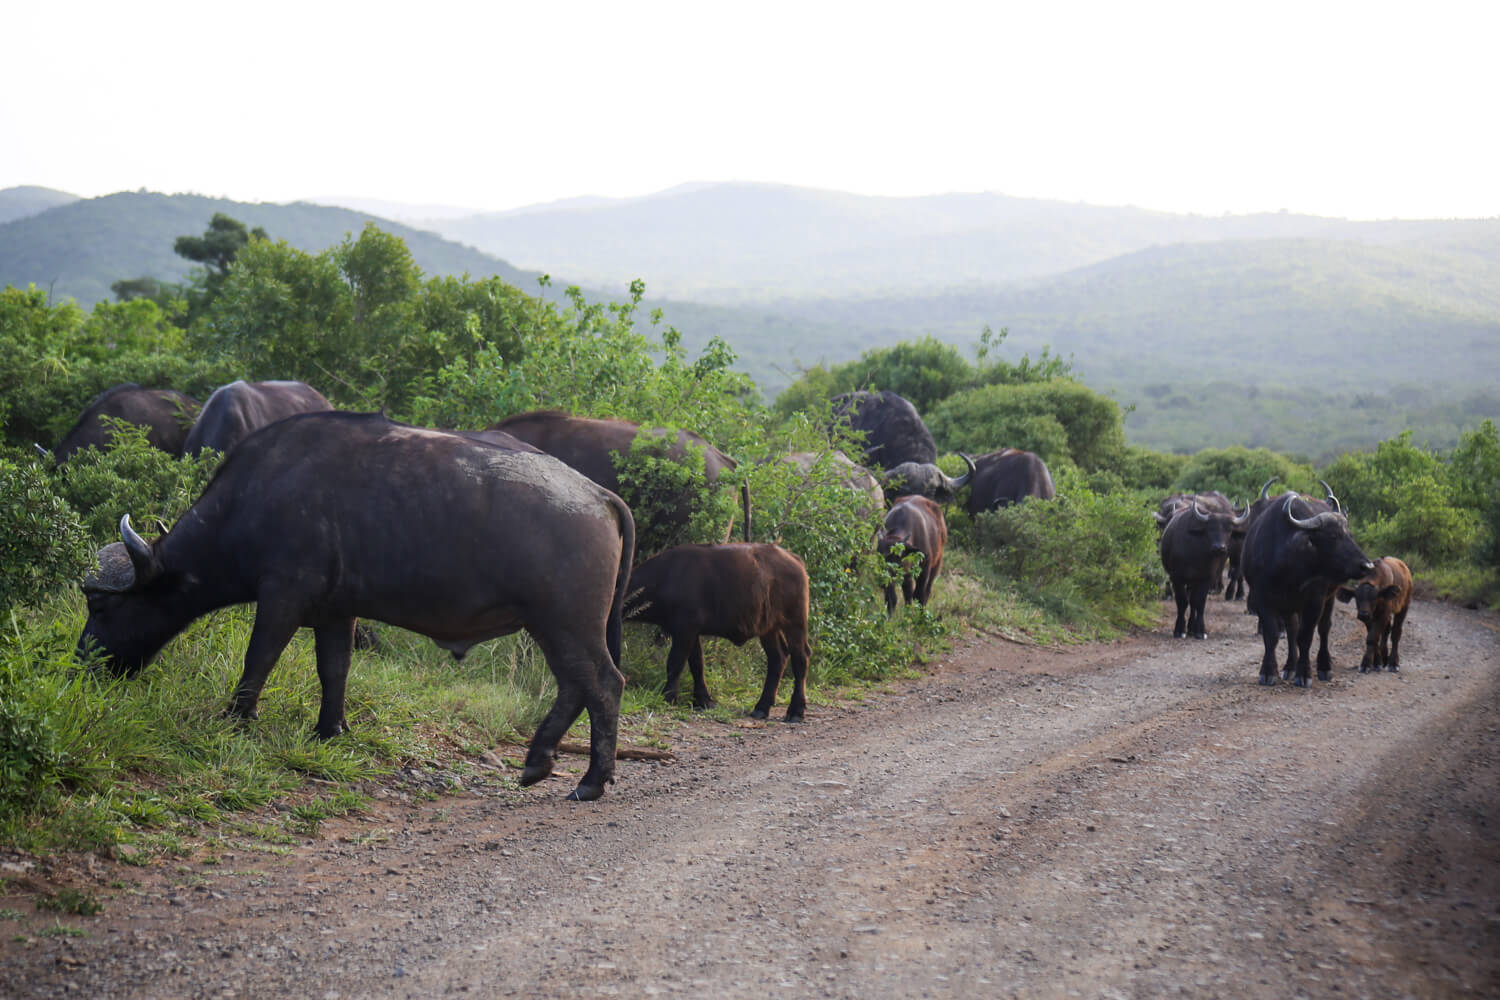 Hluhluwe Imfolozi and its large buffalo herd on the side of a dirt road in South Africa